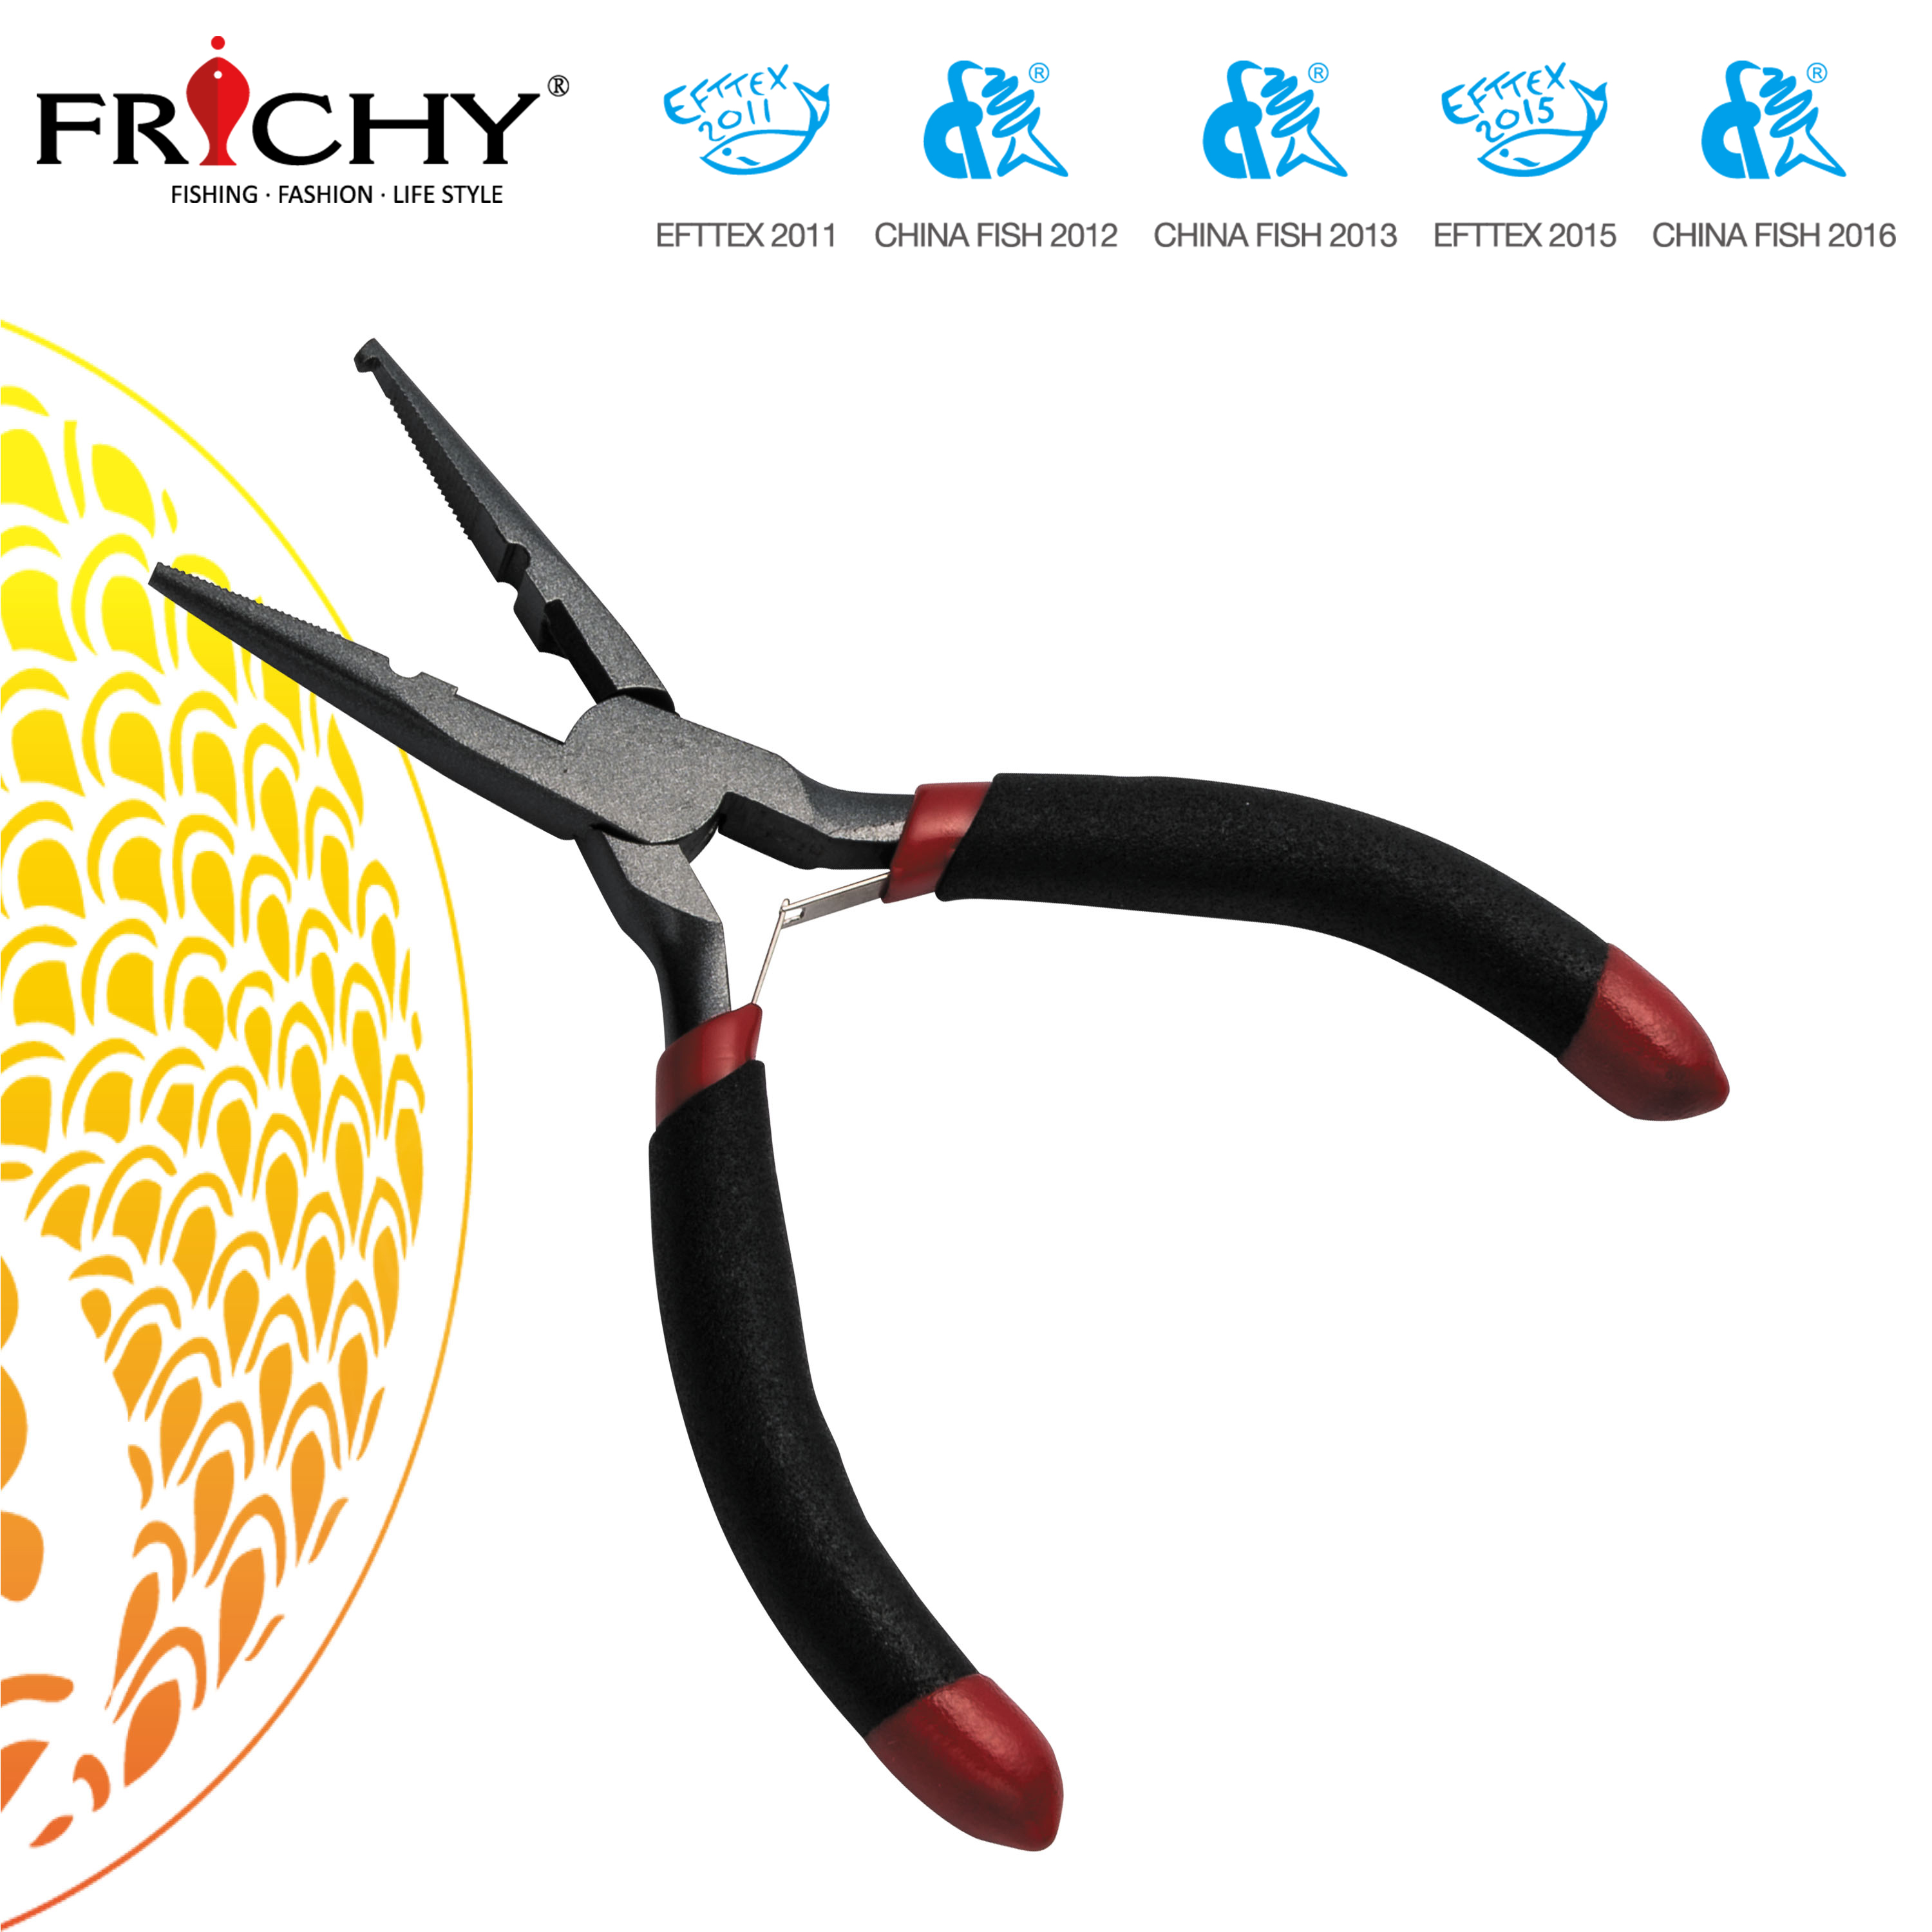 X44 Stainless Steel mini fishing pliers